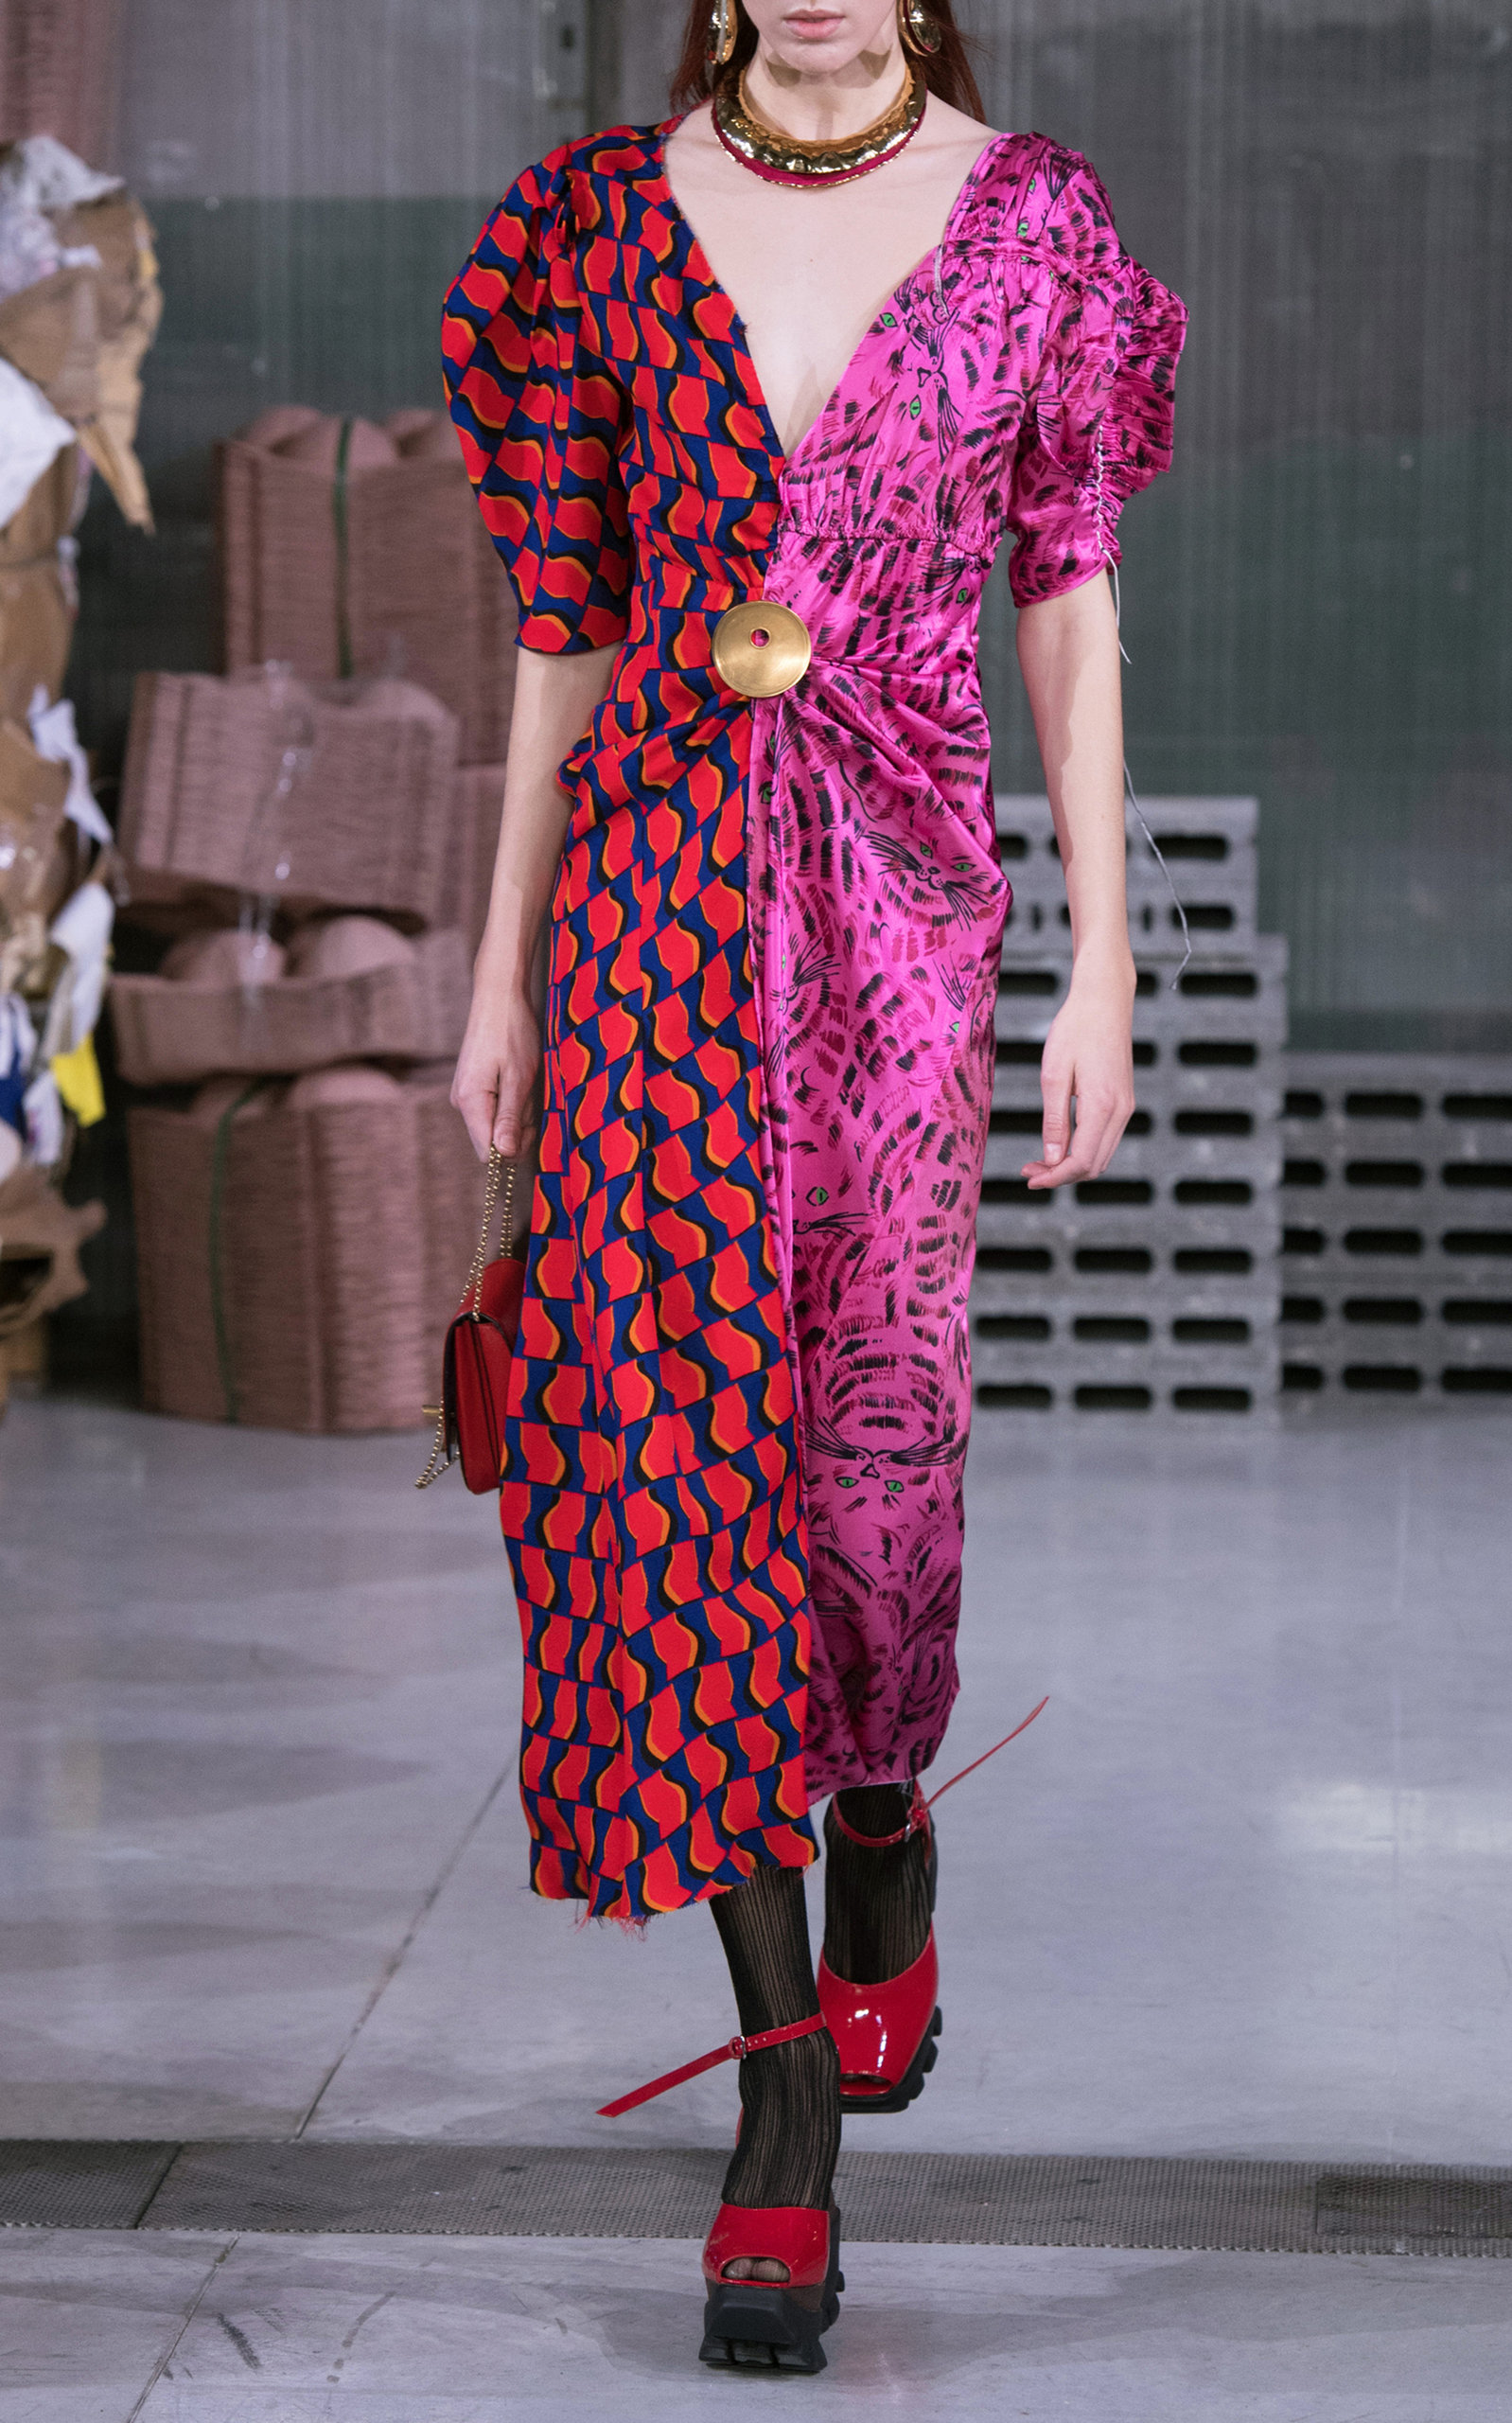 Joe Gathered Printed Satin Midi Dress Marni Discount Countdown Package Cheap How Much Clearance 2018 Unisex In China Sale Online Discount Fashion Style IF2jo